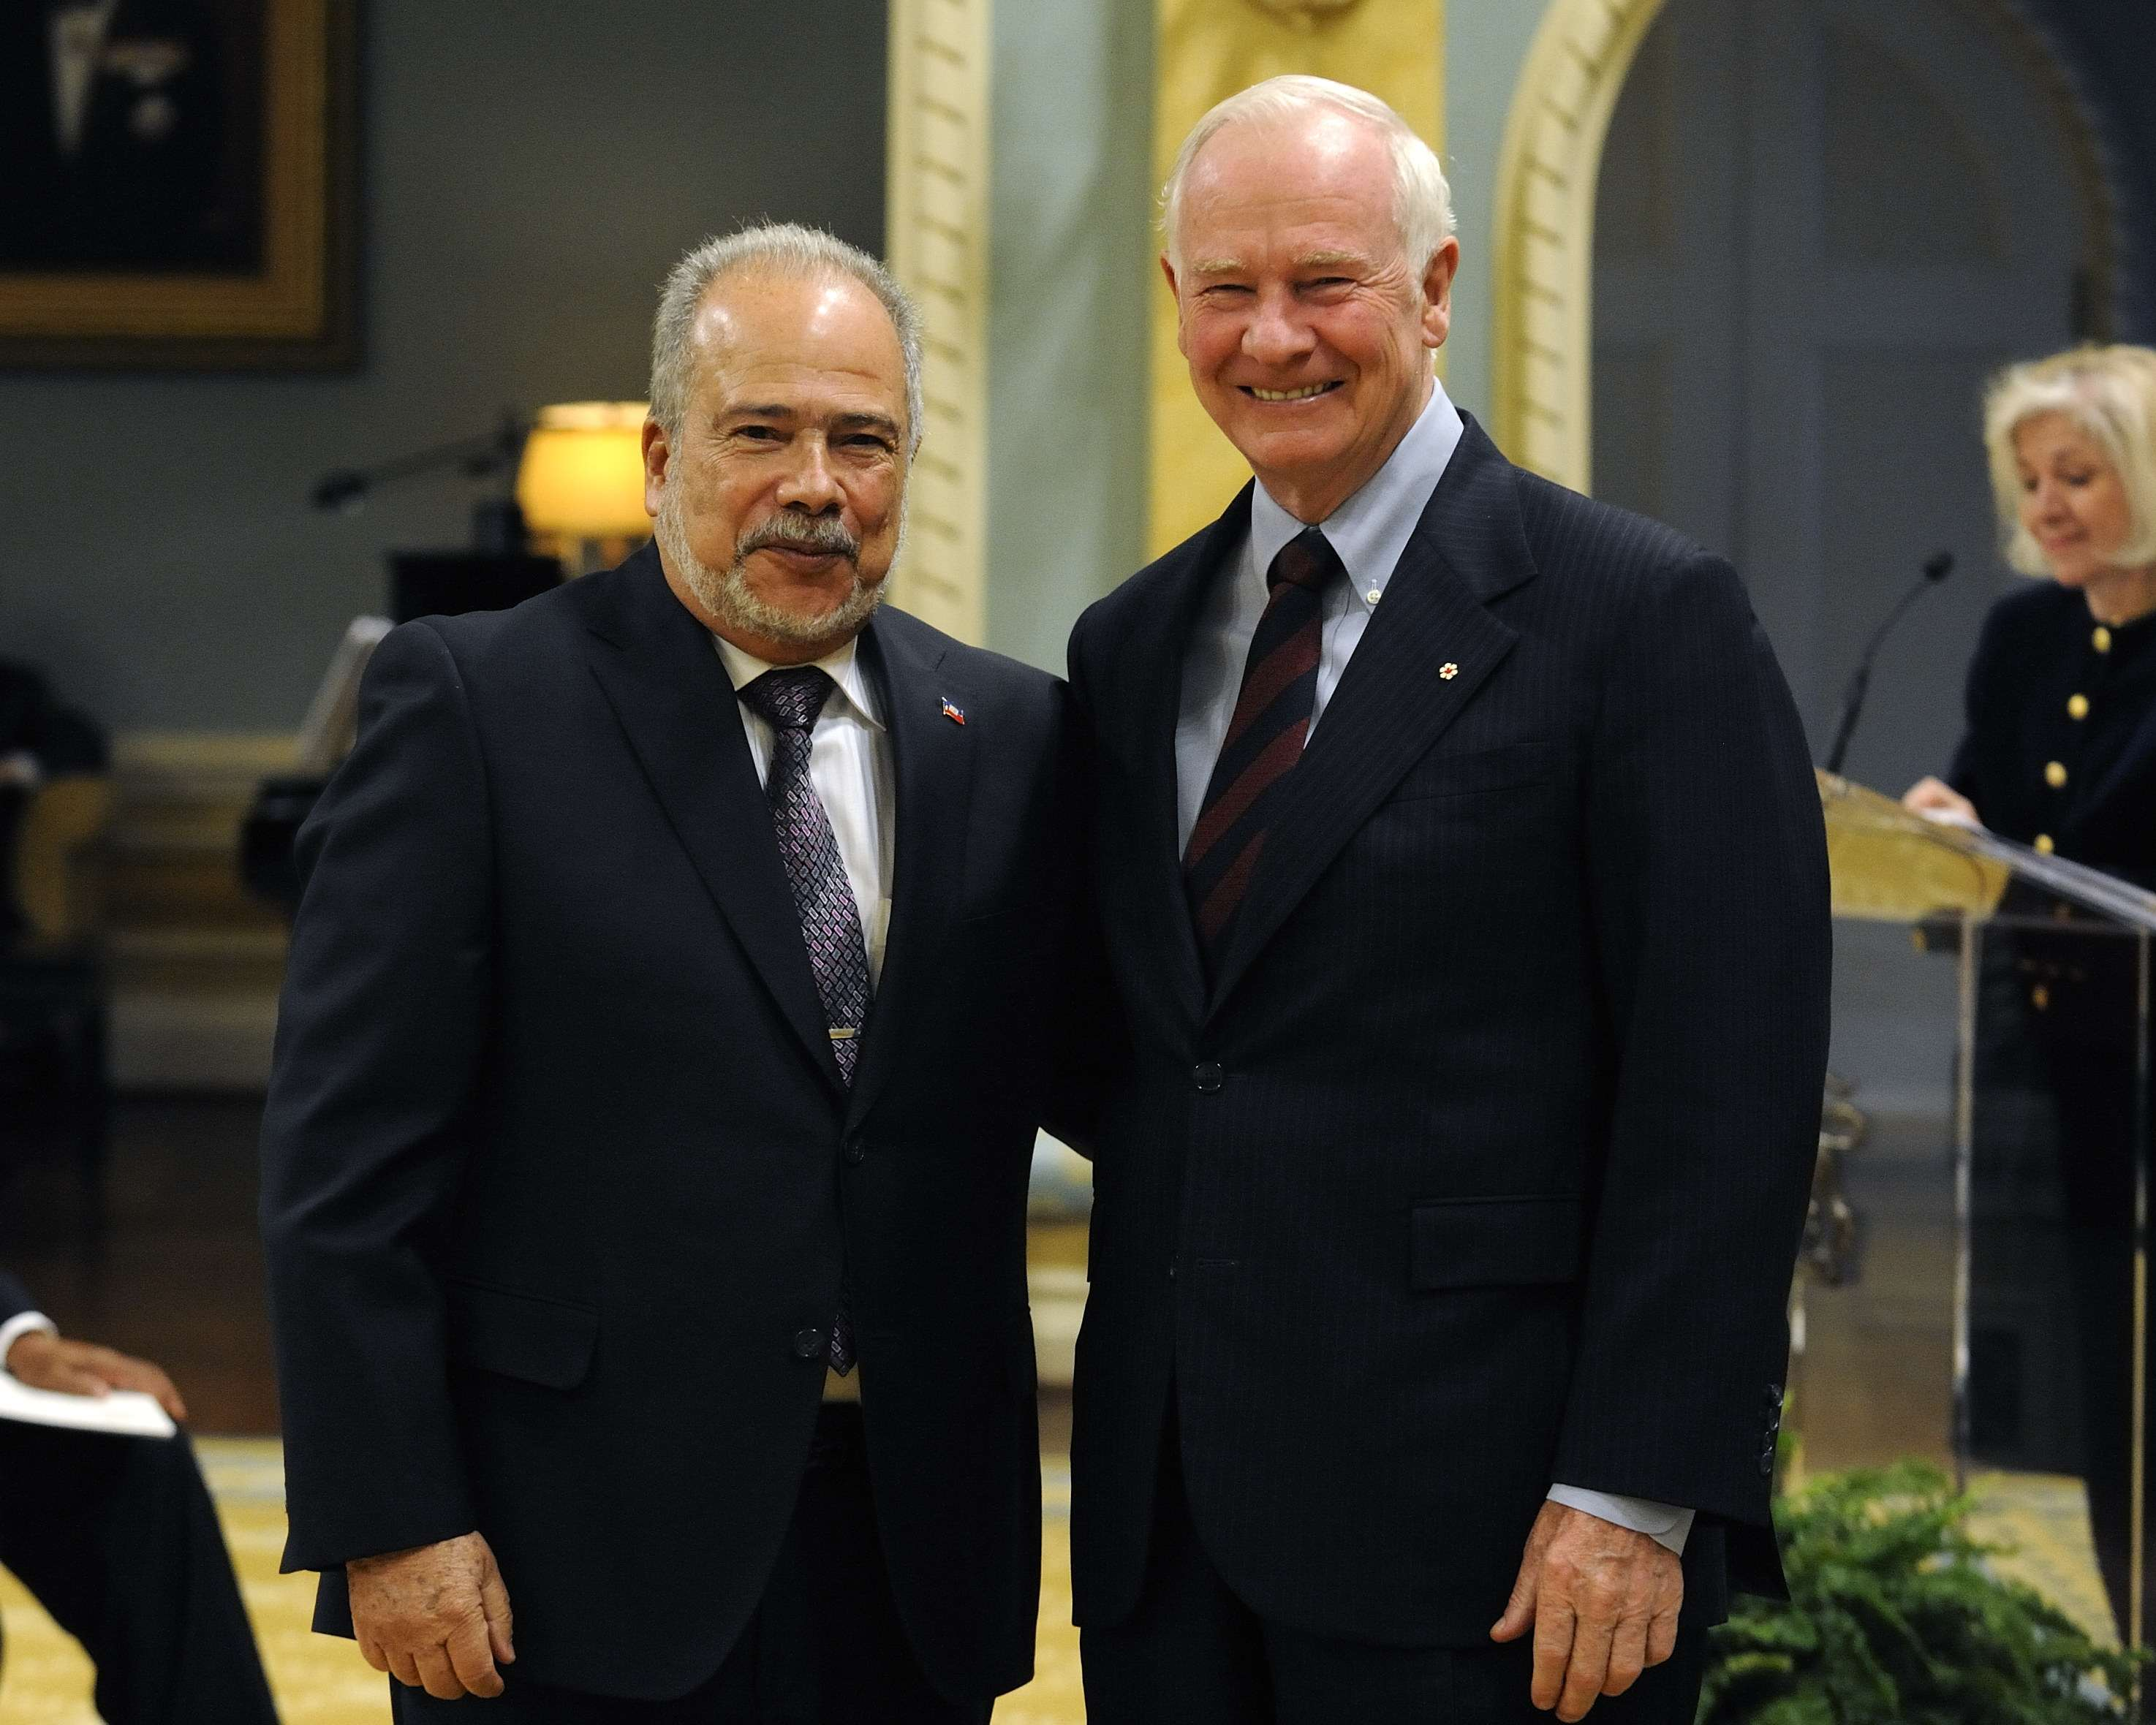 The Governor General received the credentials of His Excellency Frantz Liautaud, Ambassador of the Republic of Haiti.